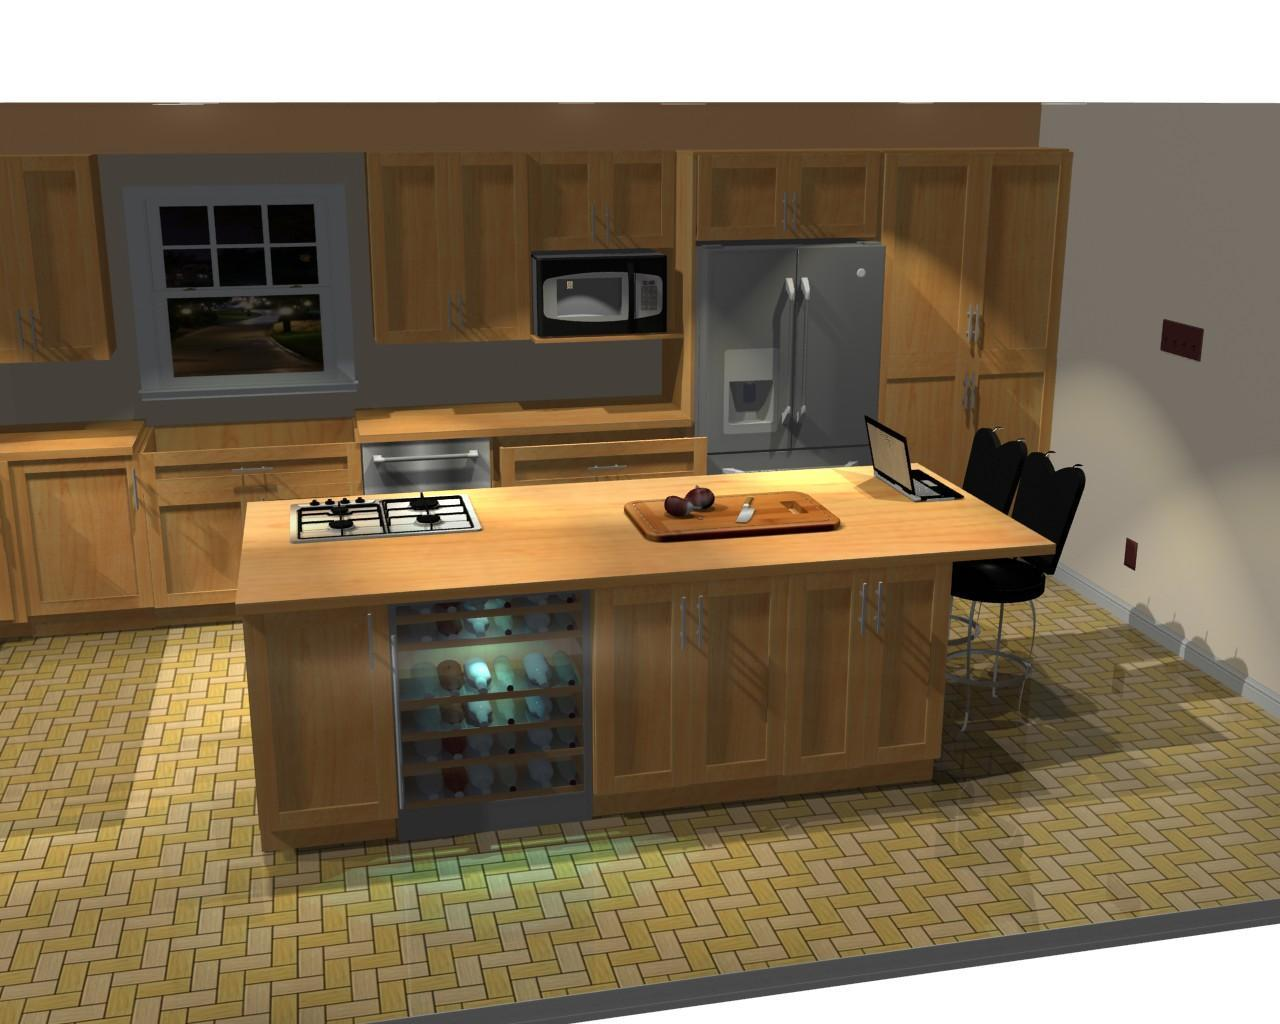 kitchen cad design software industries kitchen design software 6495